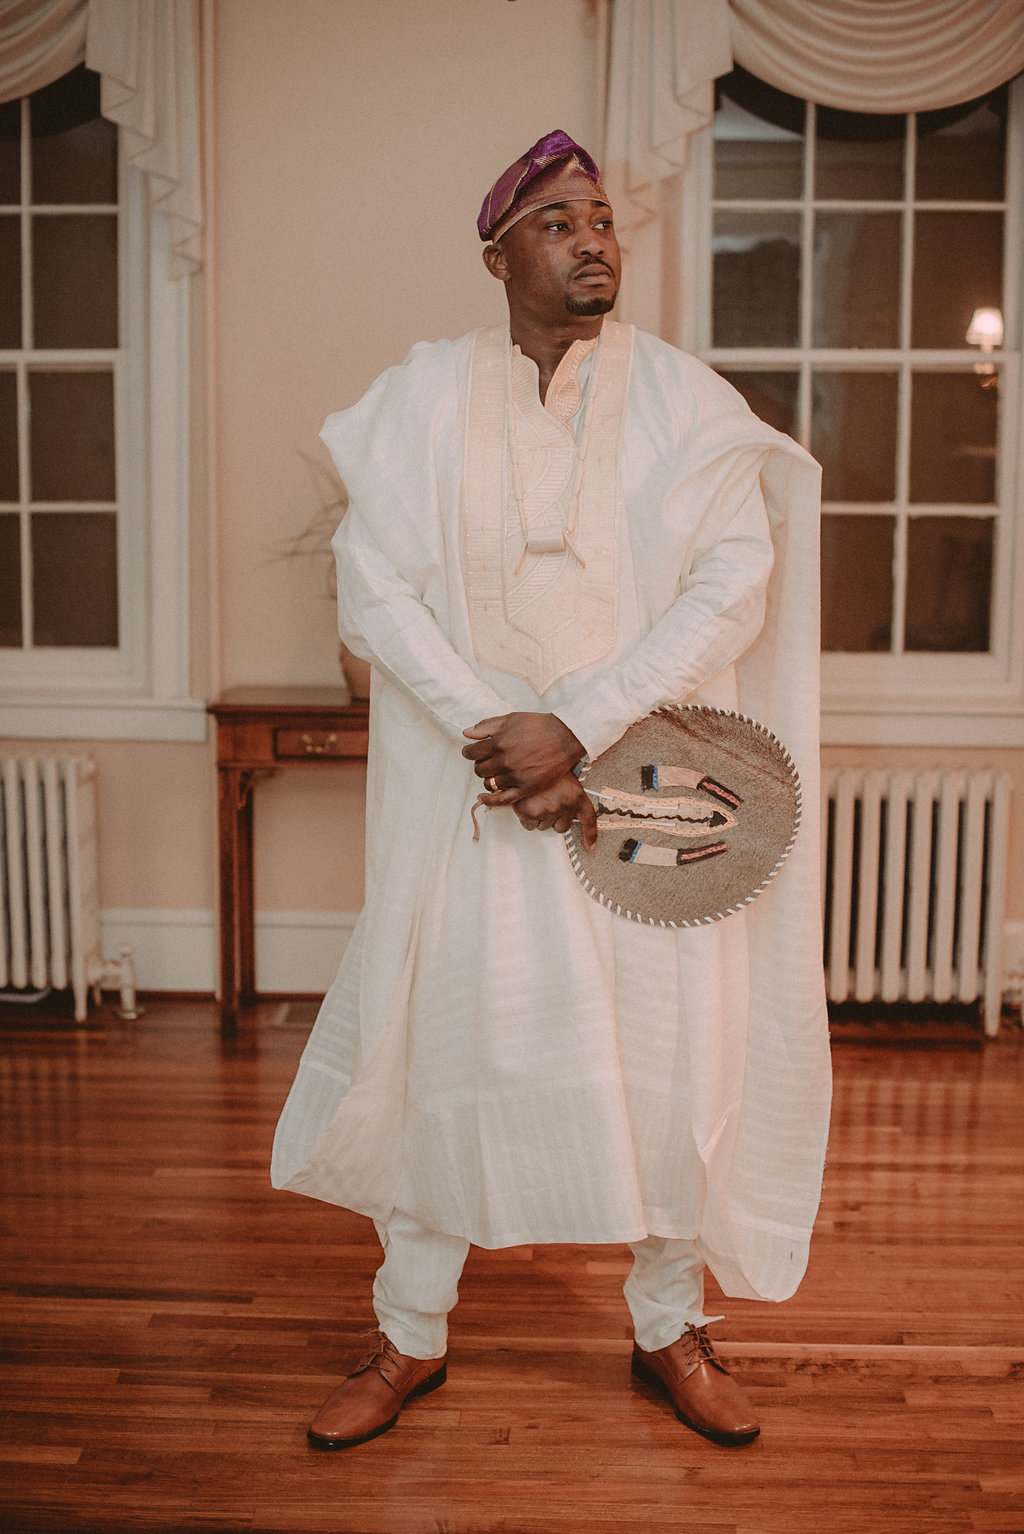 Groom in traditional clothing at reception